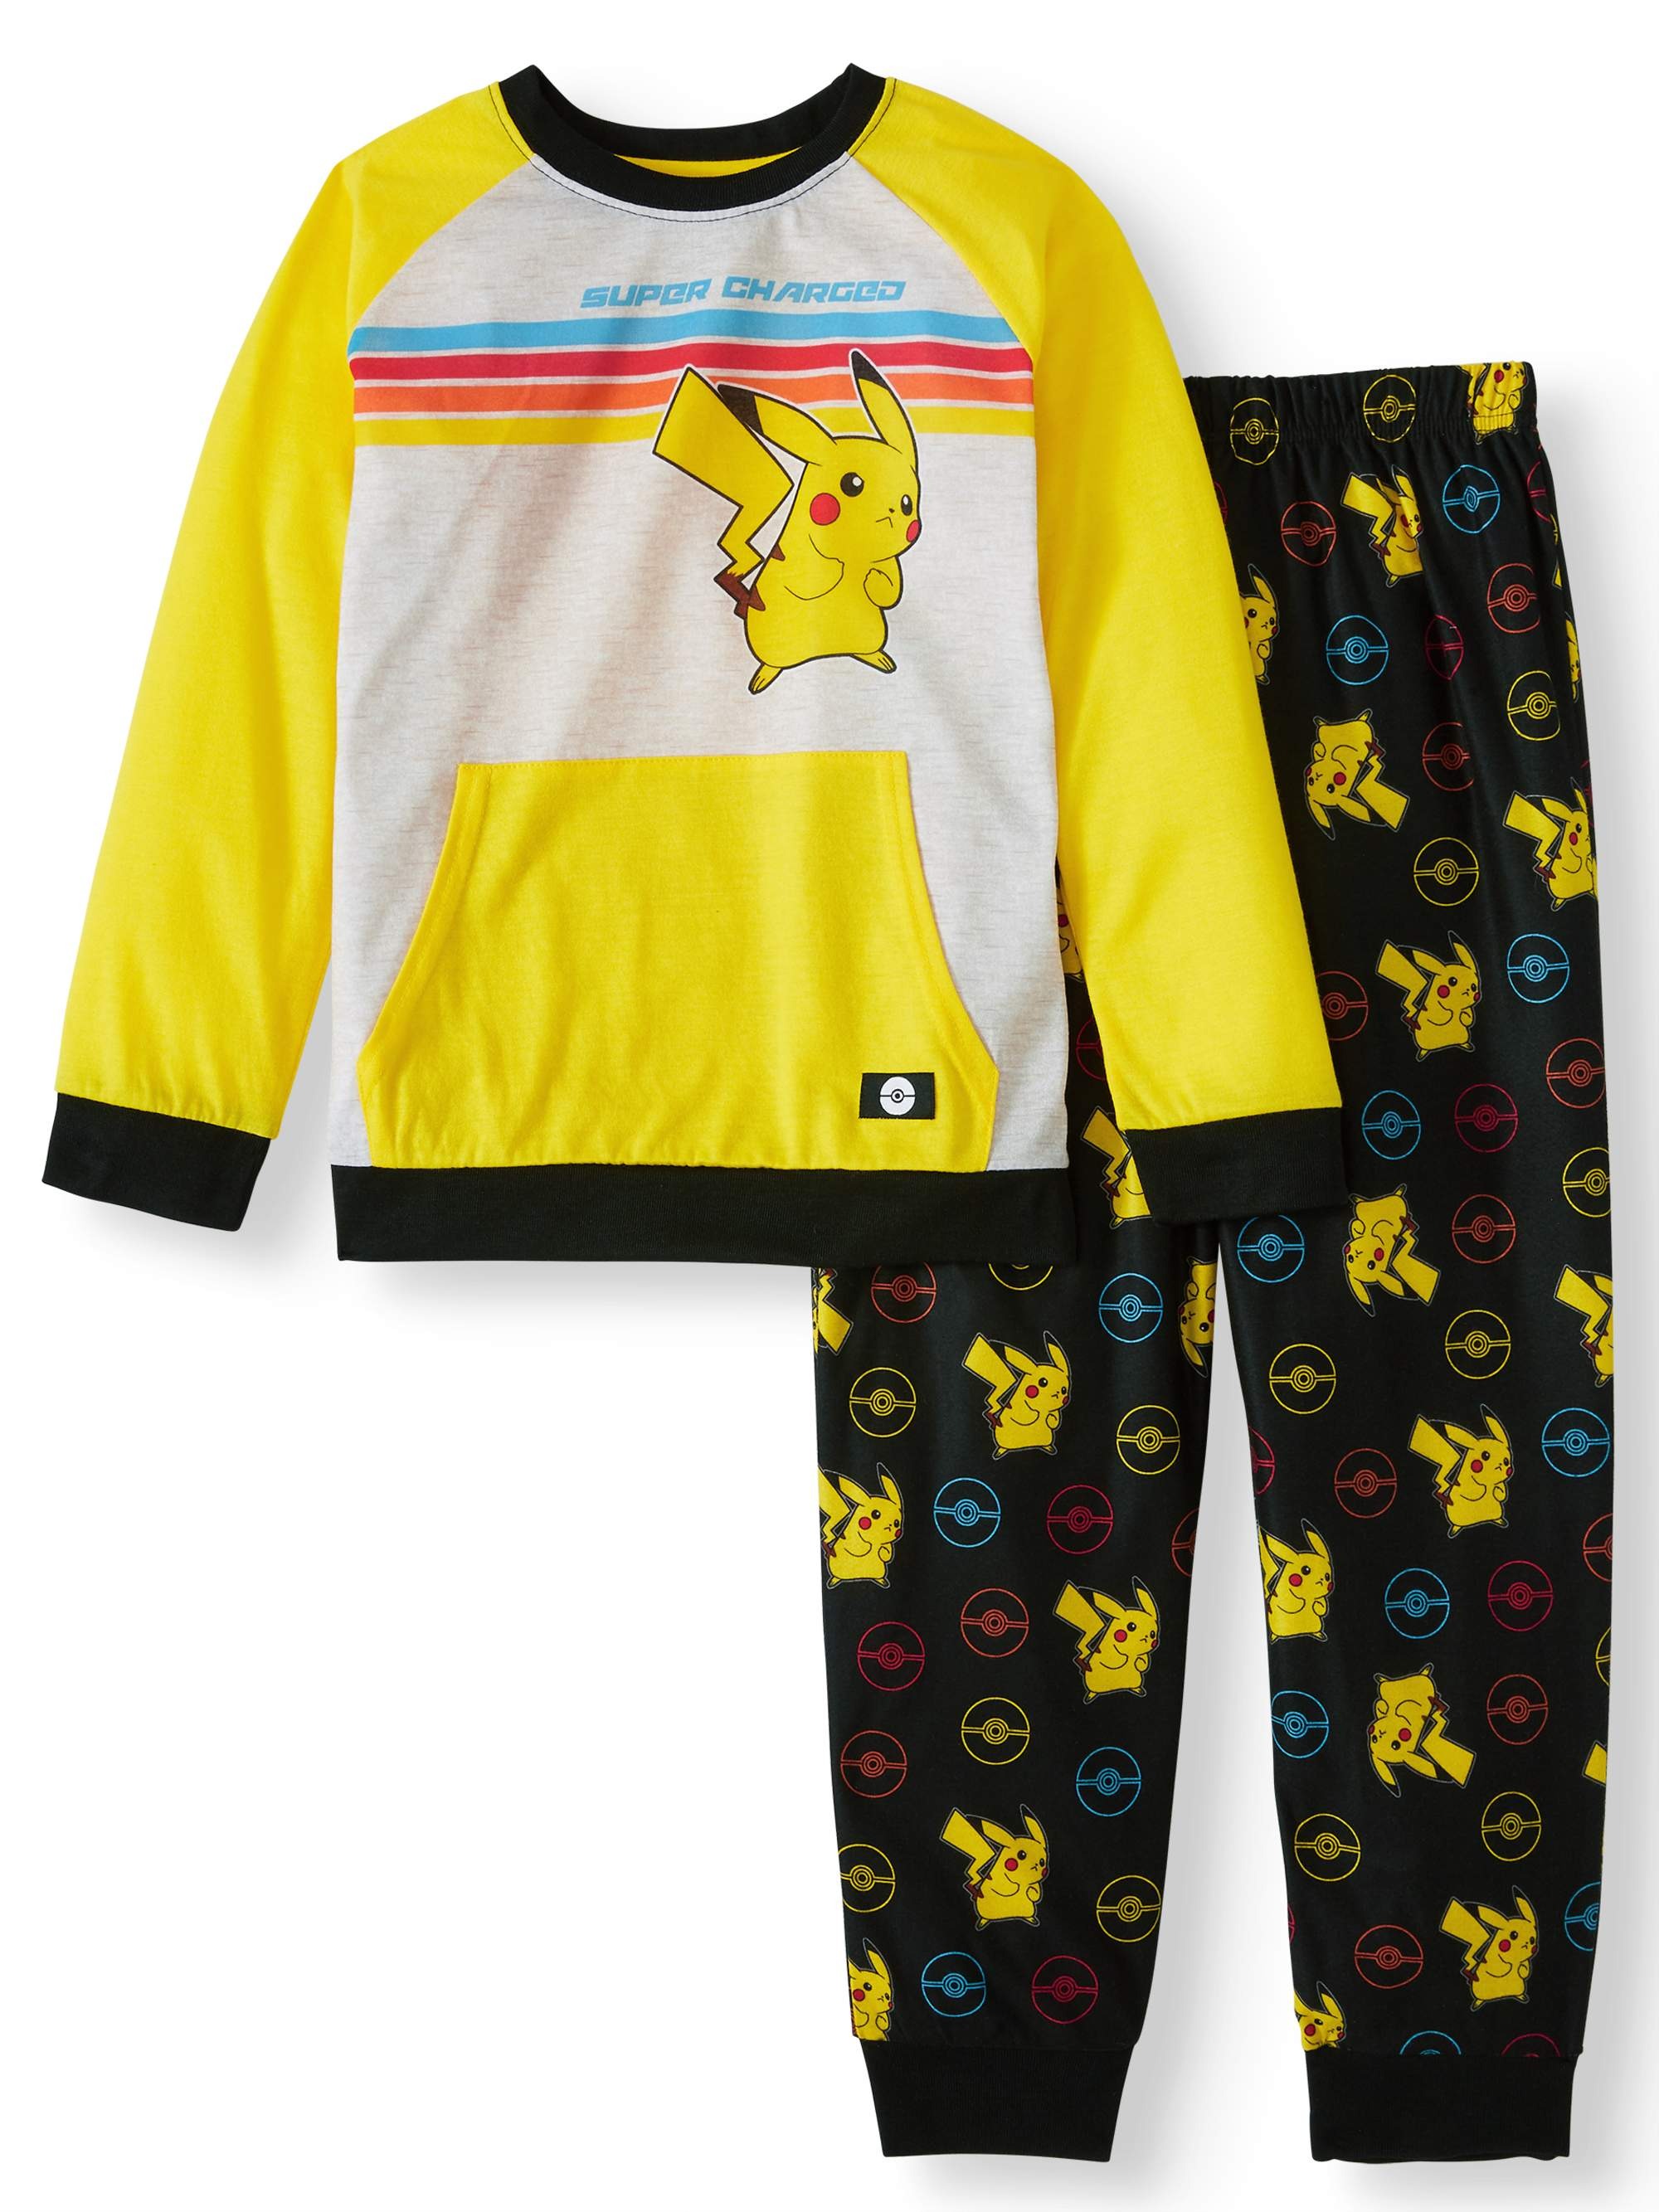 YOUTH POKEMON BOYS 2-PIECE PAJAMA SET SIZE 10-12